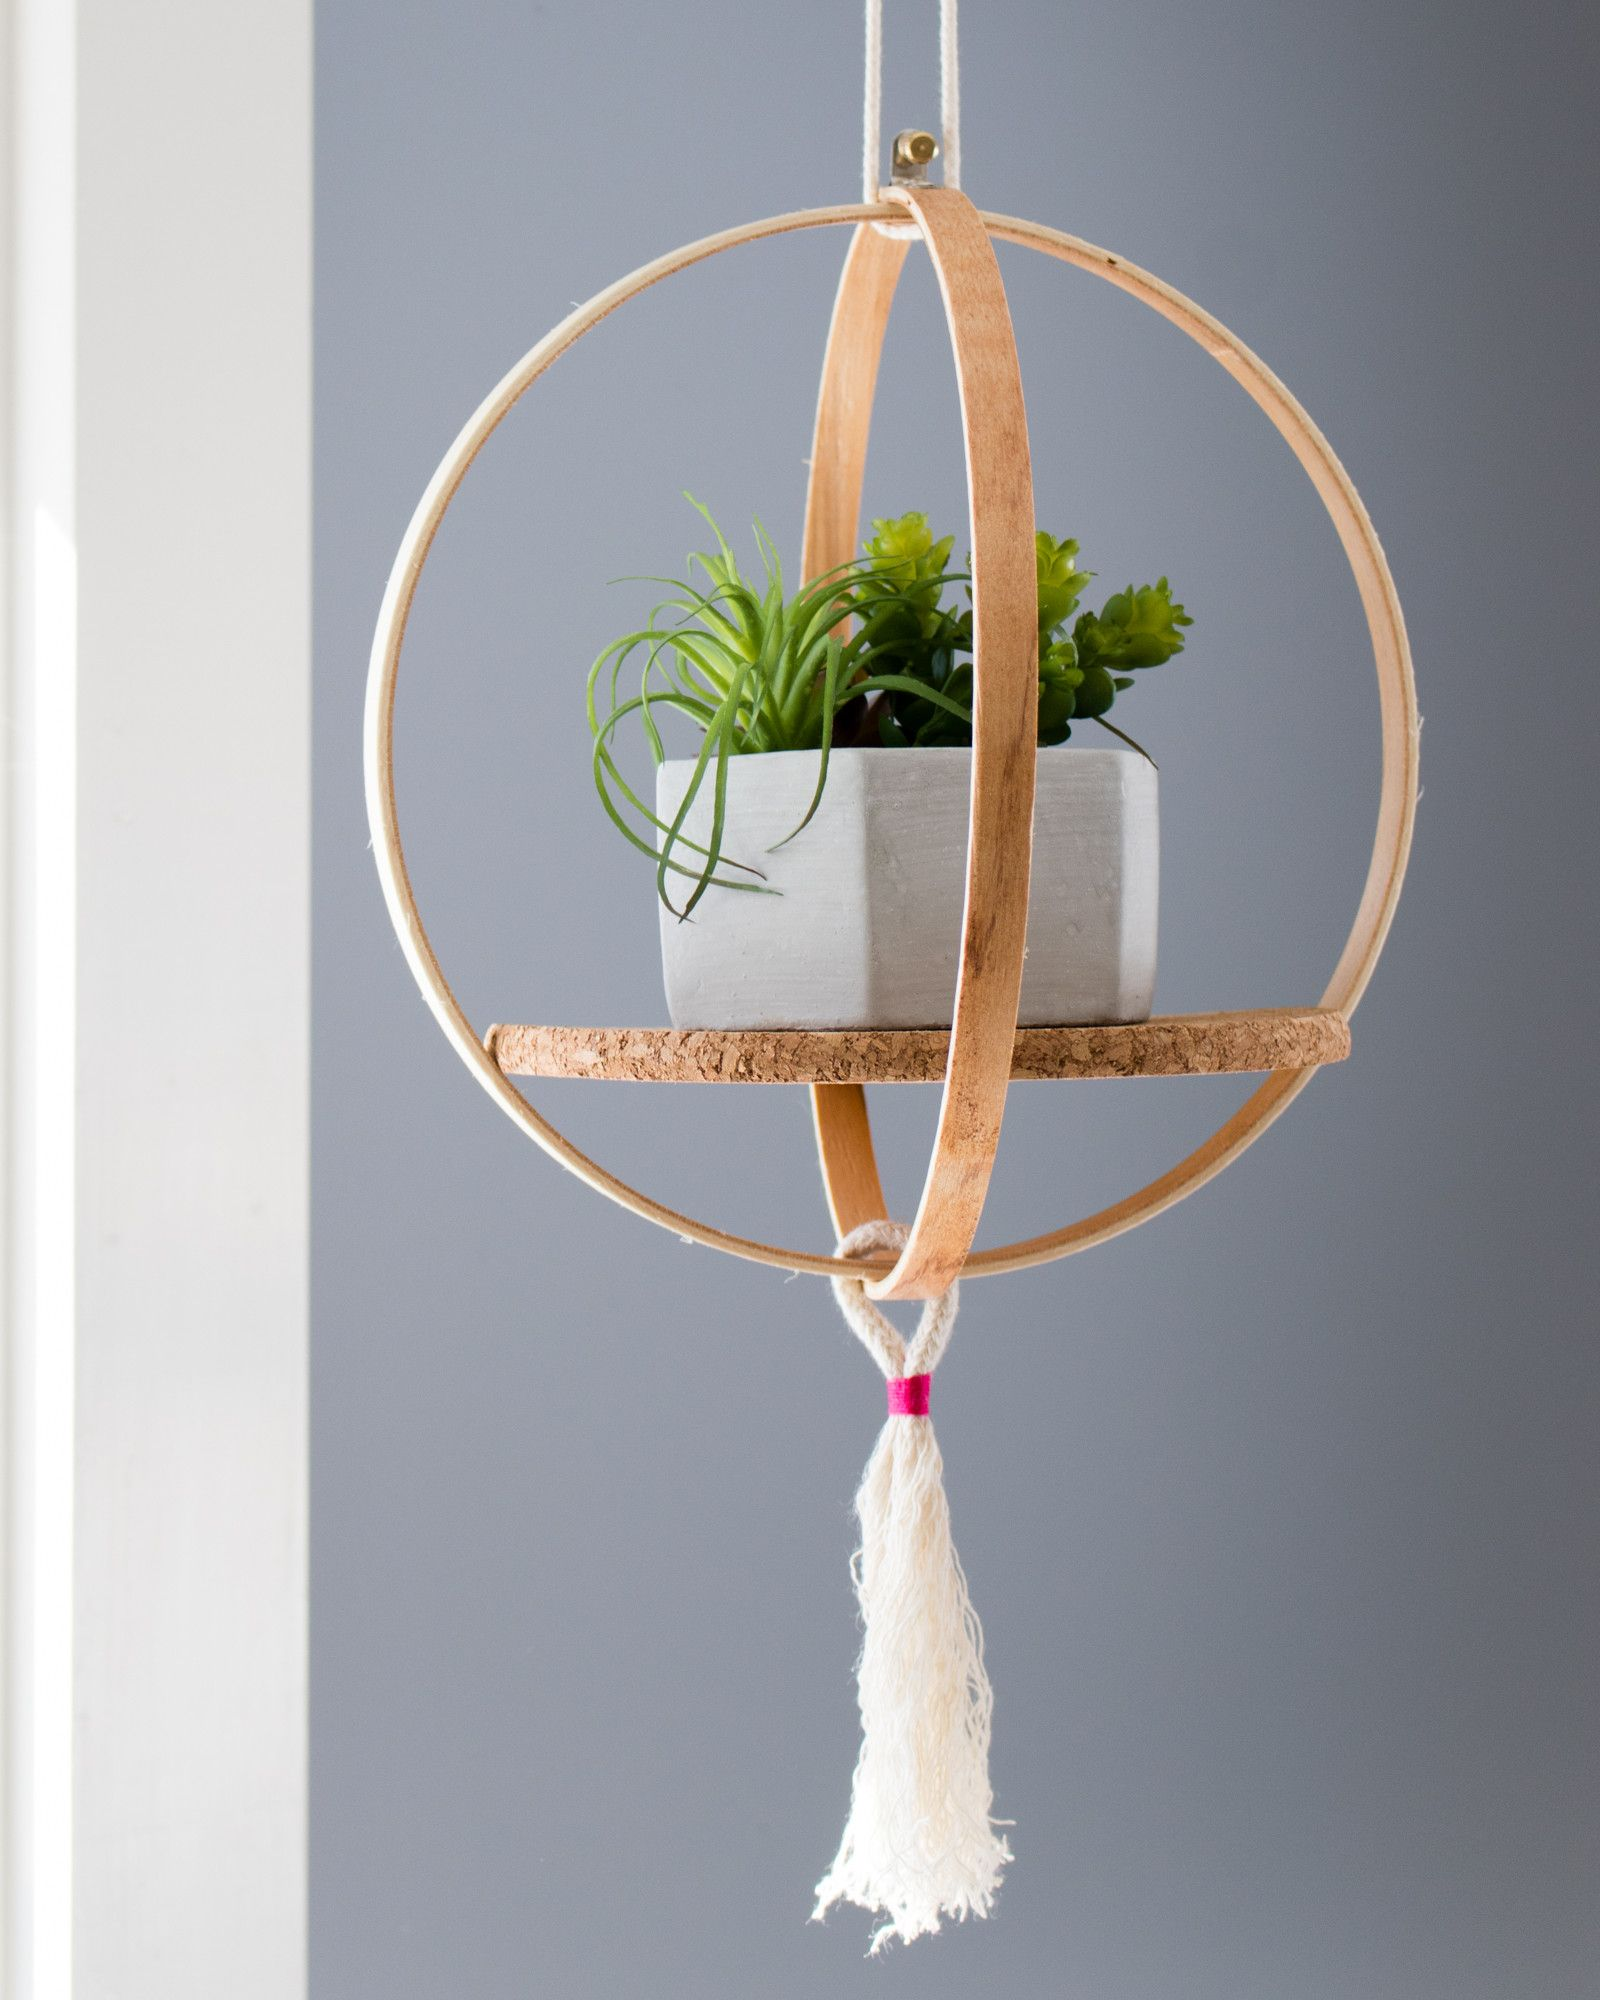 11 Clever Ways To Use An Embroidery Hoop Diy Hanging Planter Diy Hanging Shelves Hanging Plants